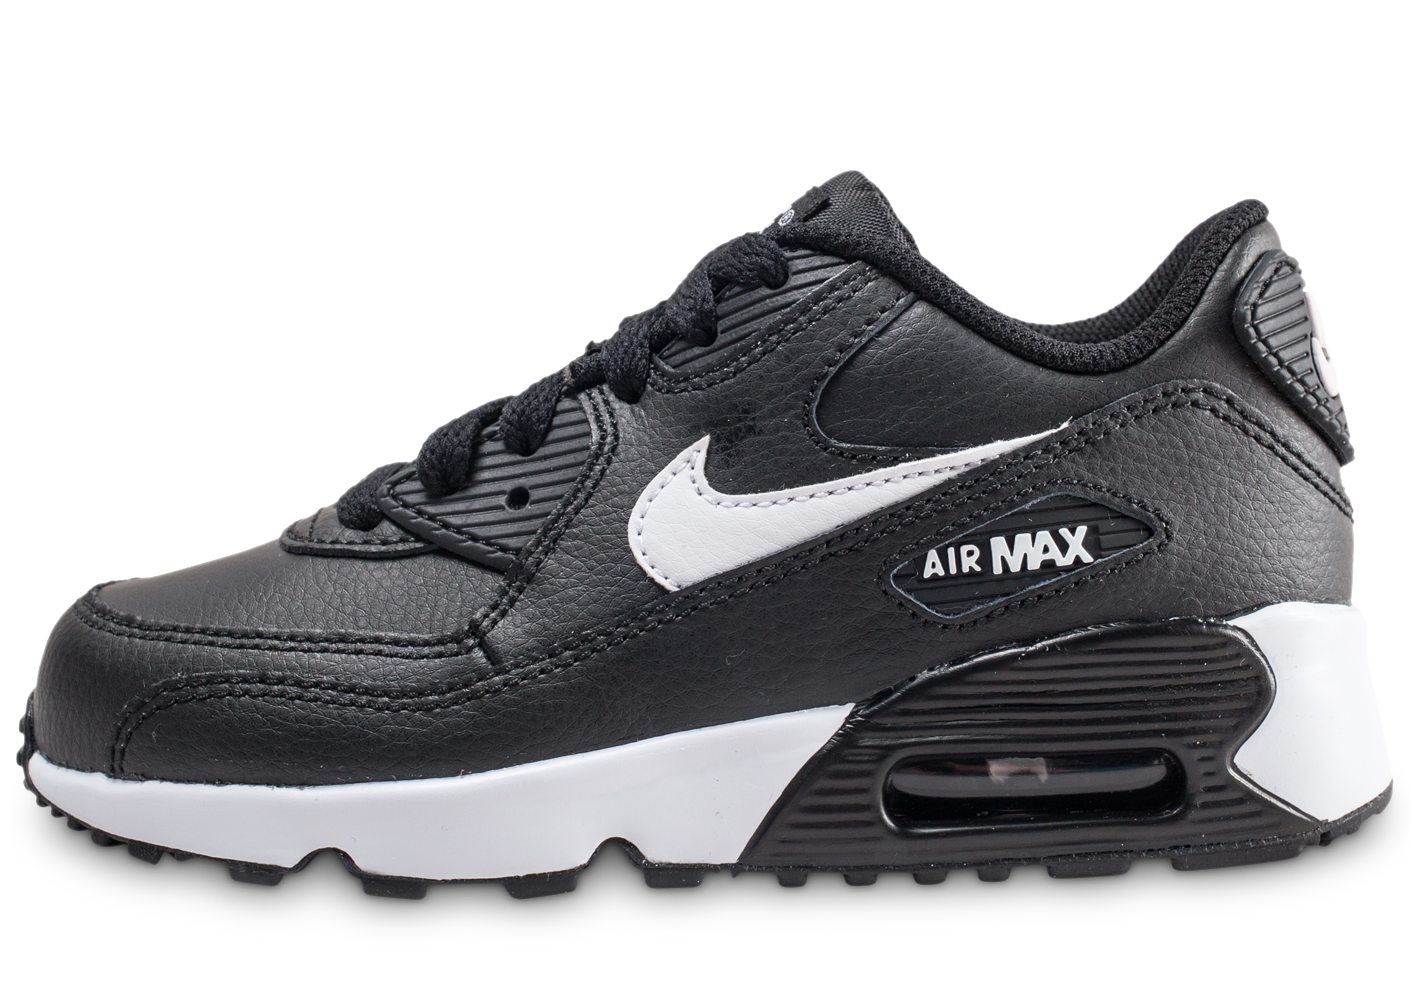 super popular 9156f 2c060 Nike air max 90 leather noire et blanche enfant.